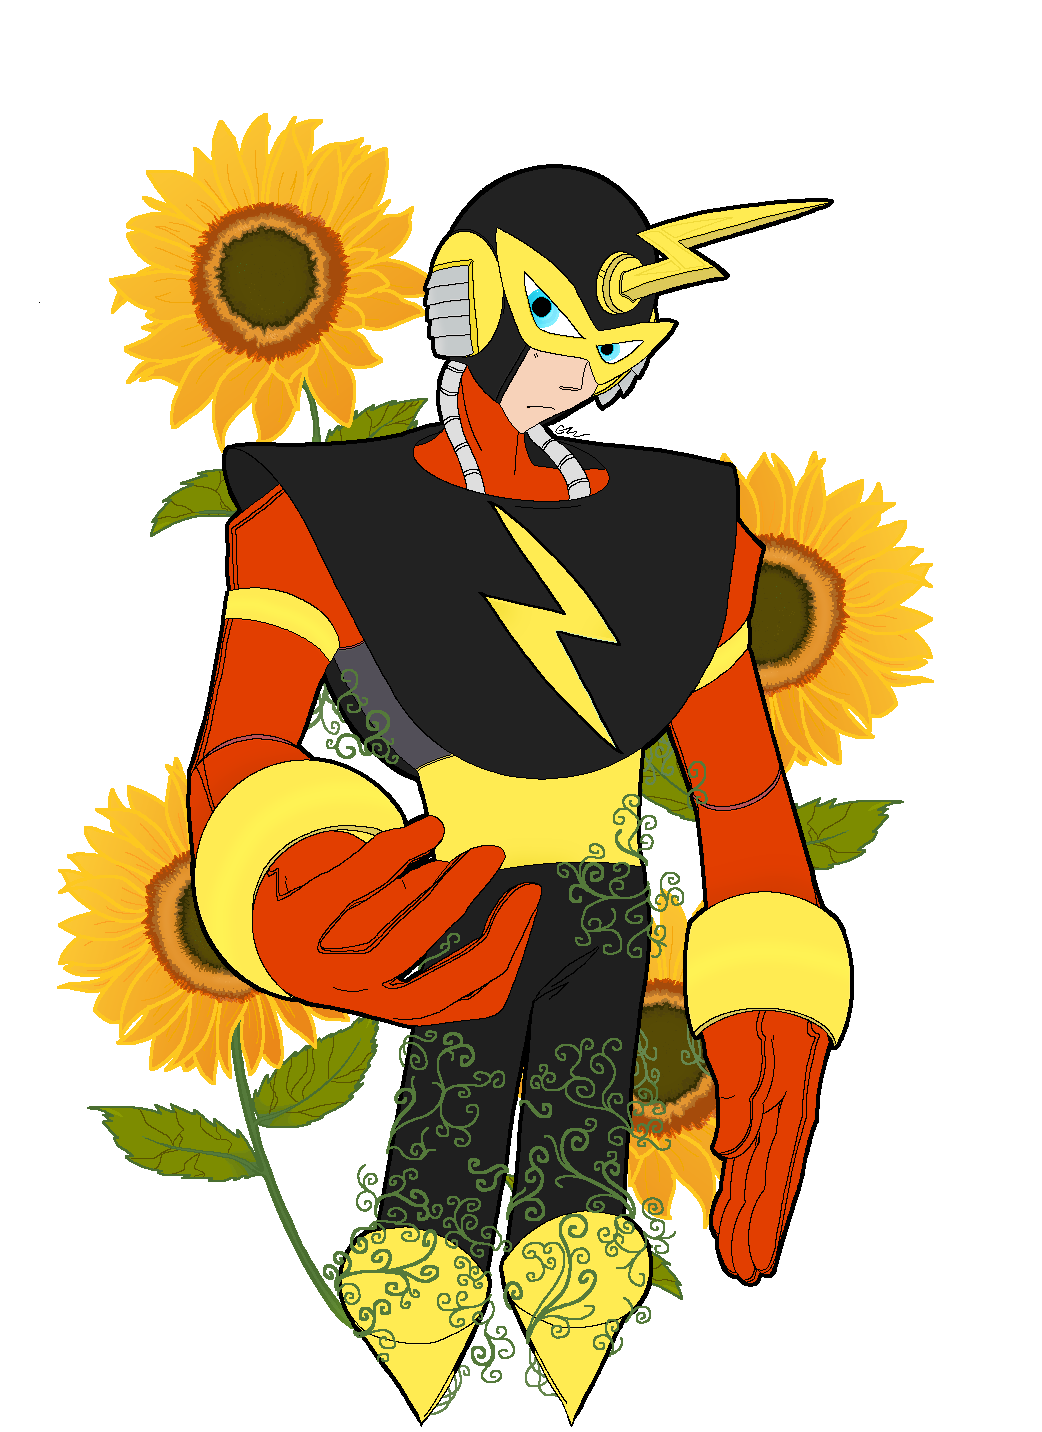 "ElecMan with the sunflower plant. Request for ""Anonymous"". #myart#elecman #artists on tumblr #fanart#game fanart#videogame fanart#megaman#classic megaman#robot#robot master#vines#plant#plants#flower#flowers#sunflower#pixels#pixel#pixelart#pixel art#pixel illustration#anime#manga#helianthus#helianthus annuus"